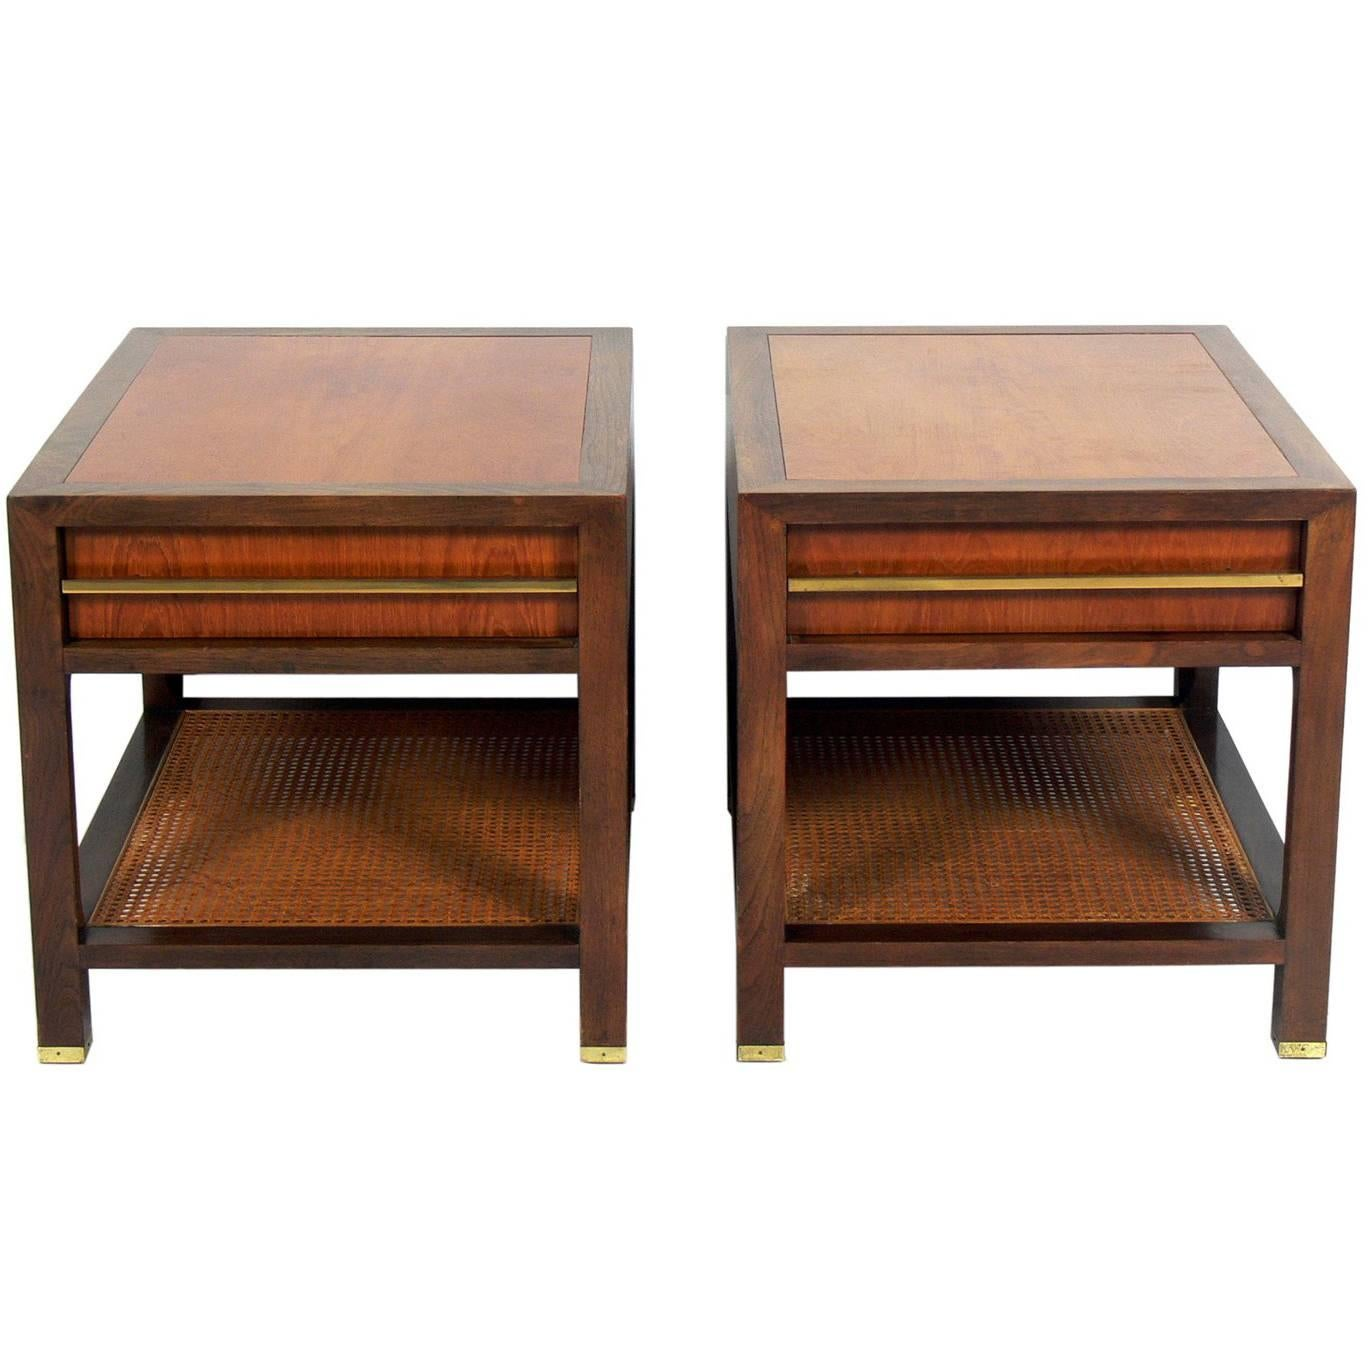 Pair Of Clean Lined End Tables By Michael Taylor For Baker 1